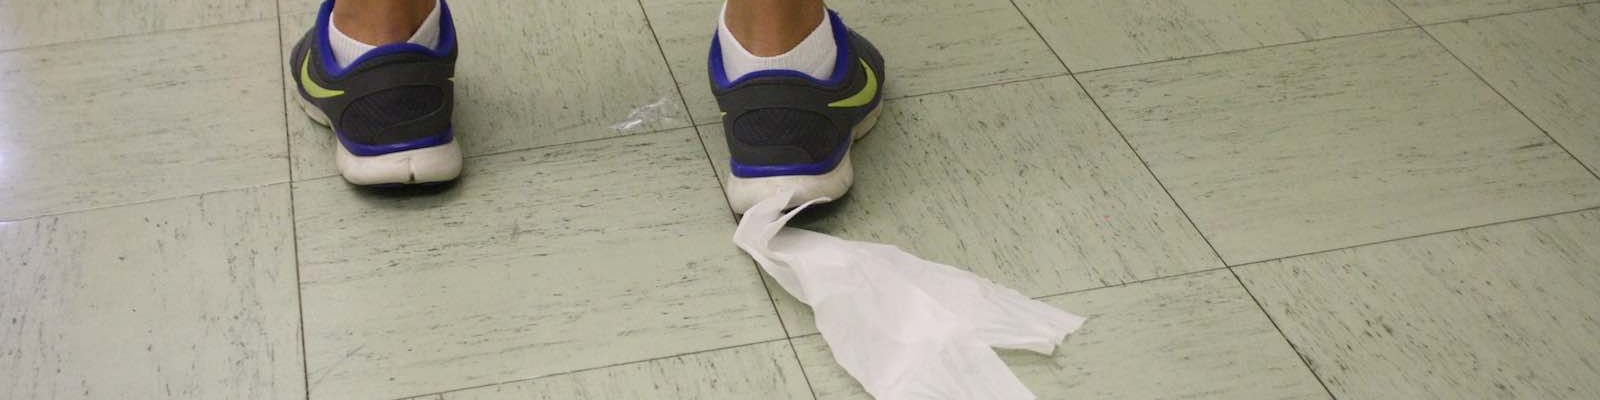 Image result for toilet paper on shoe